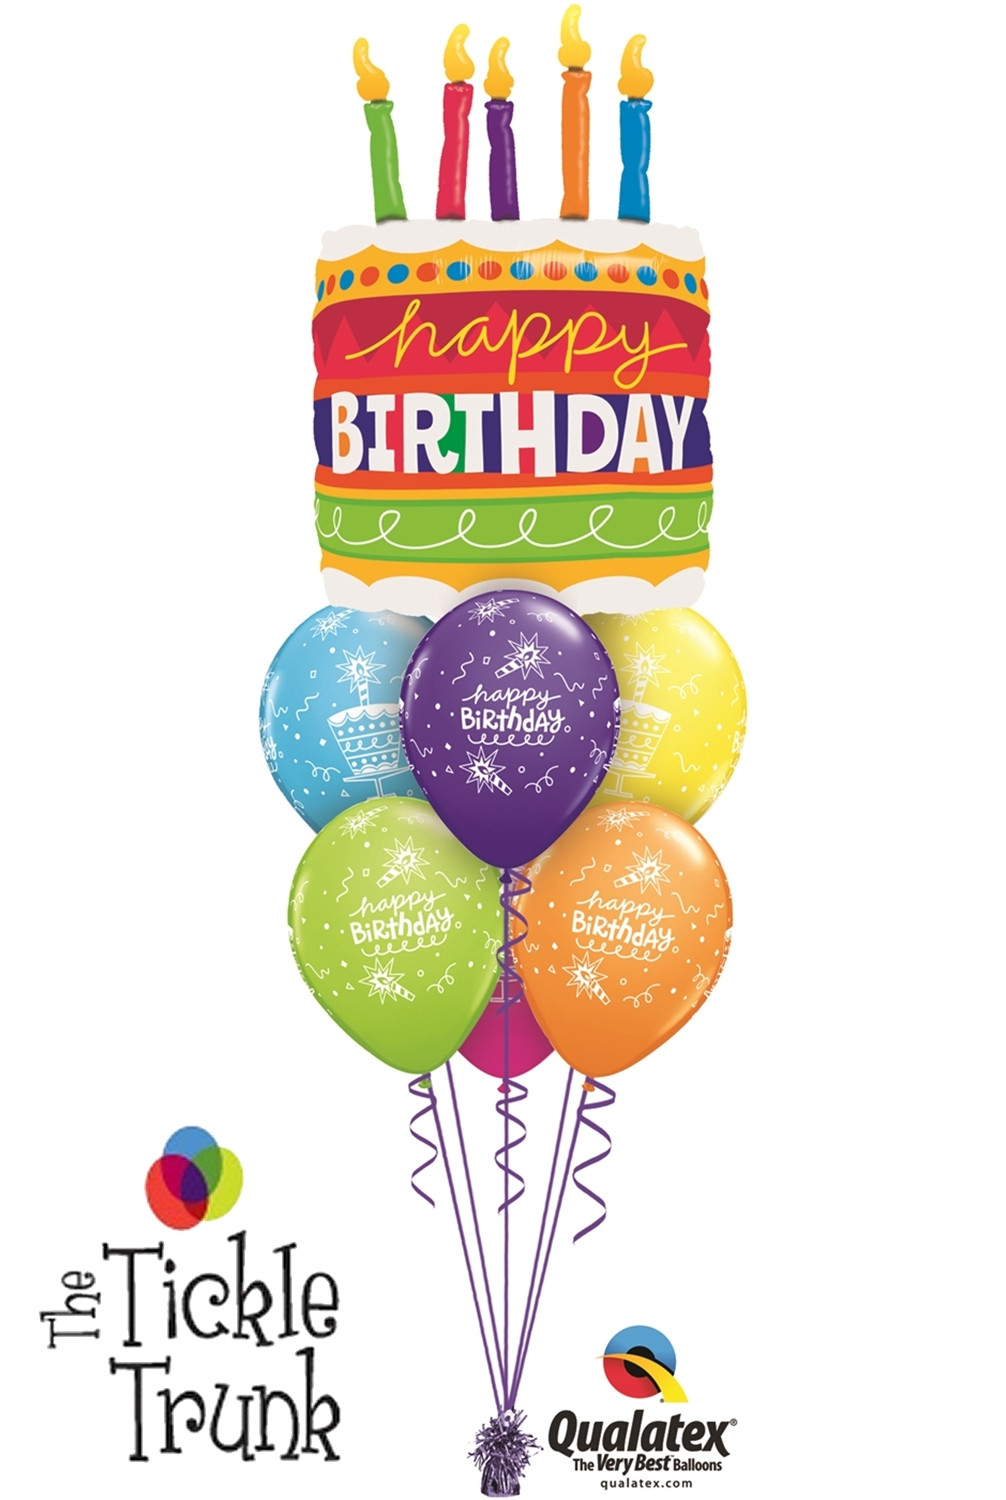 Birthday Cake With Candles And Balloons  Birthday Cake & Candles Balloon Bouquet